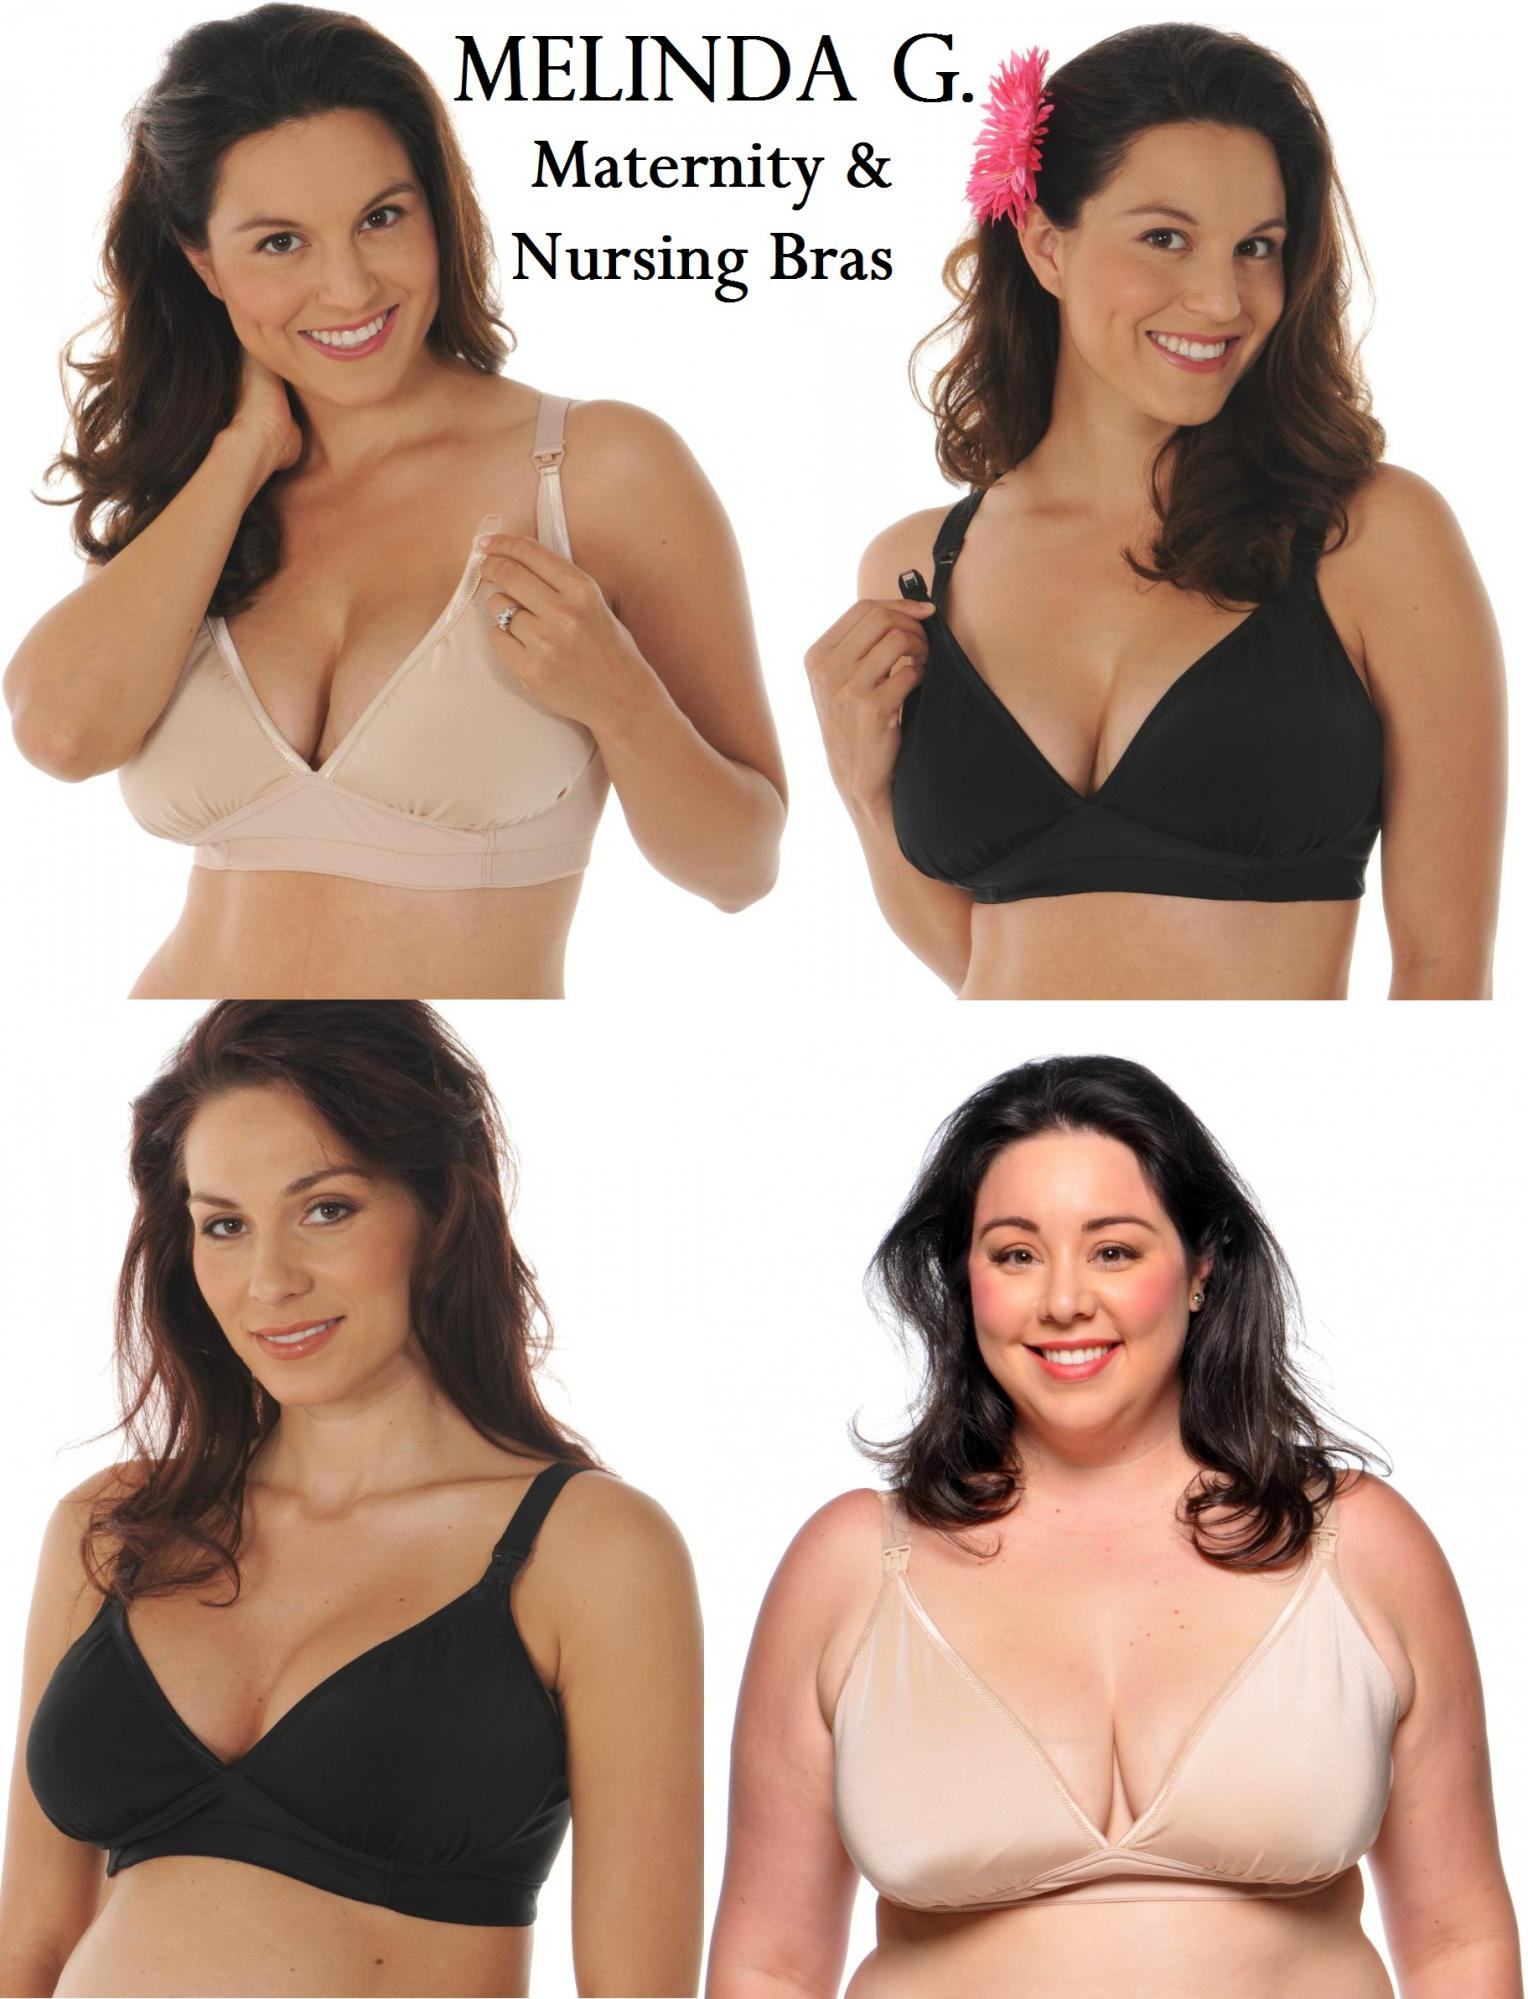 Nursing Bras for Voluptuous Moms